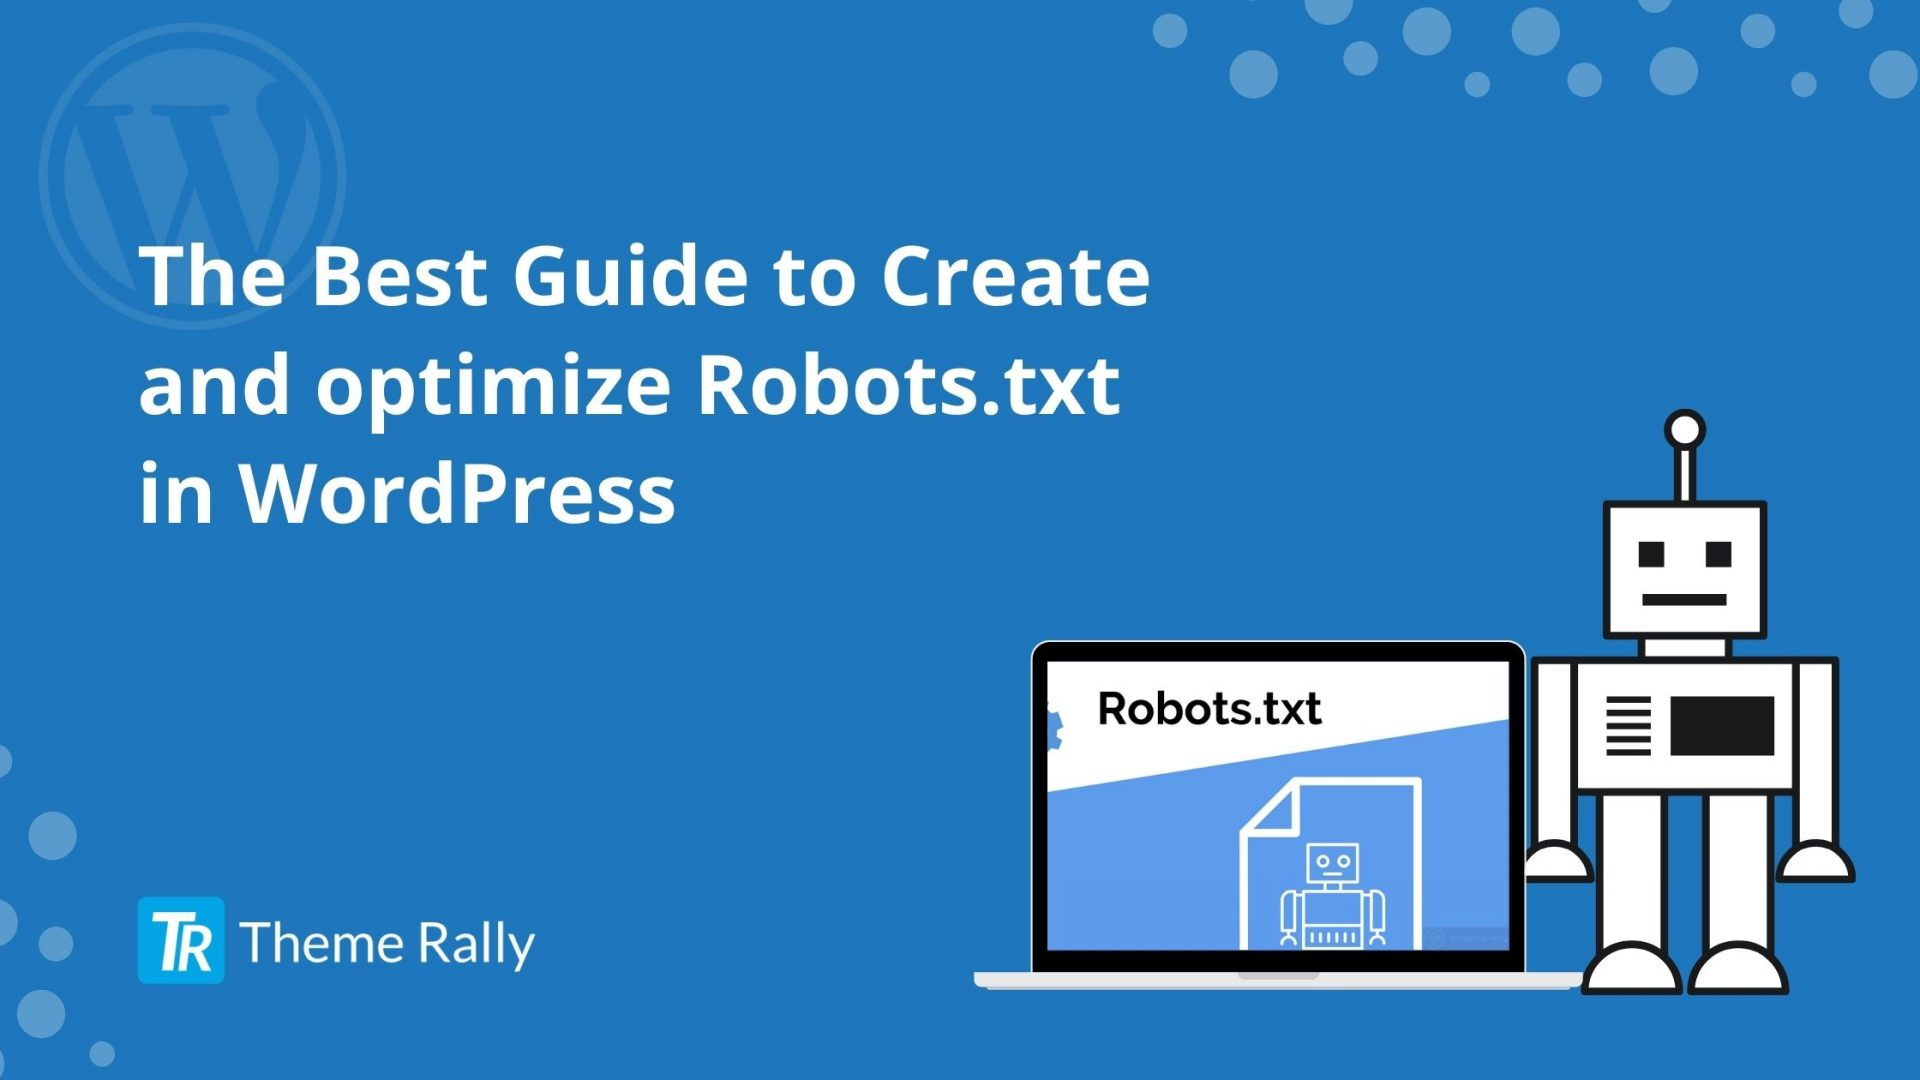 The Best Guide to Create and optimize Robots.txt in WordPress